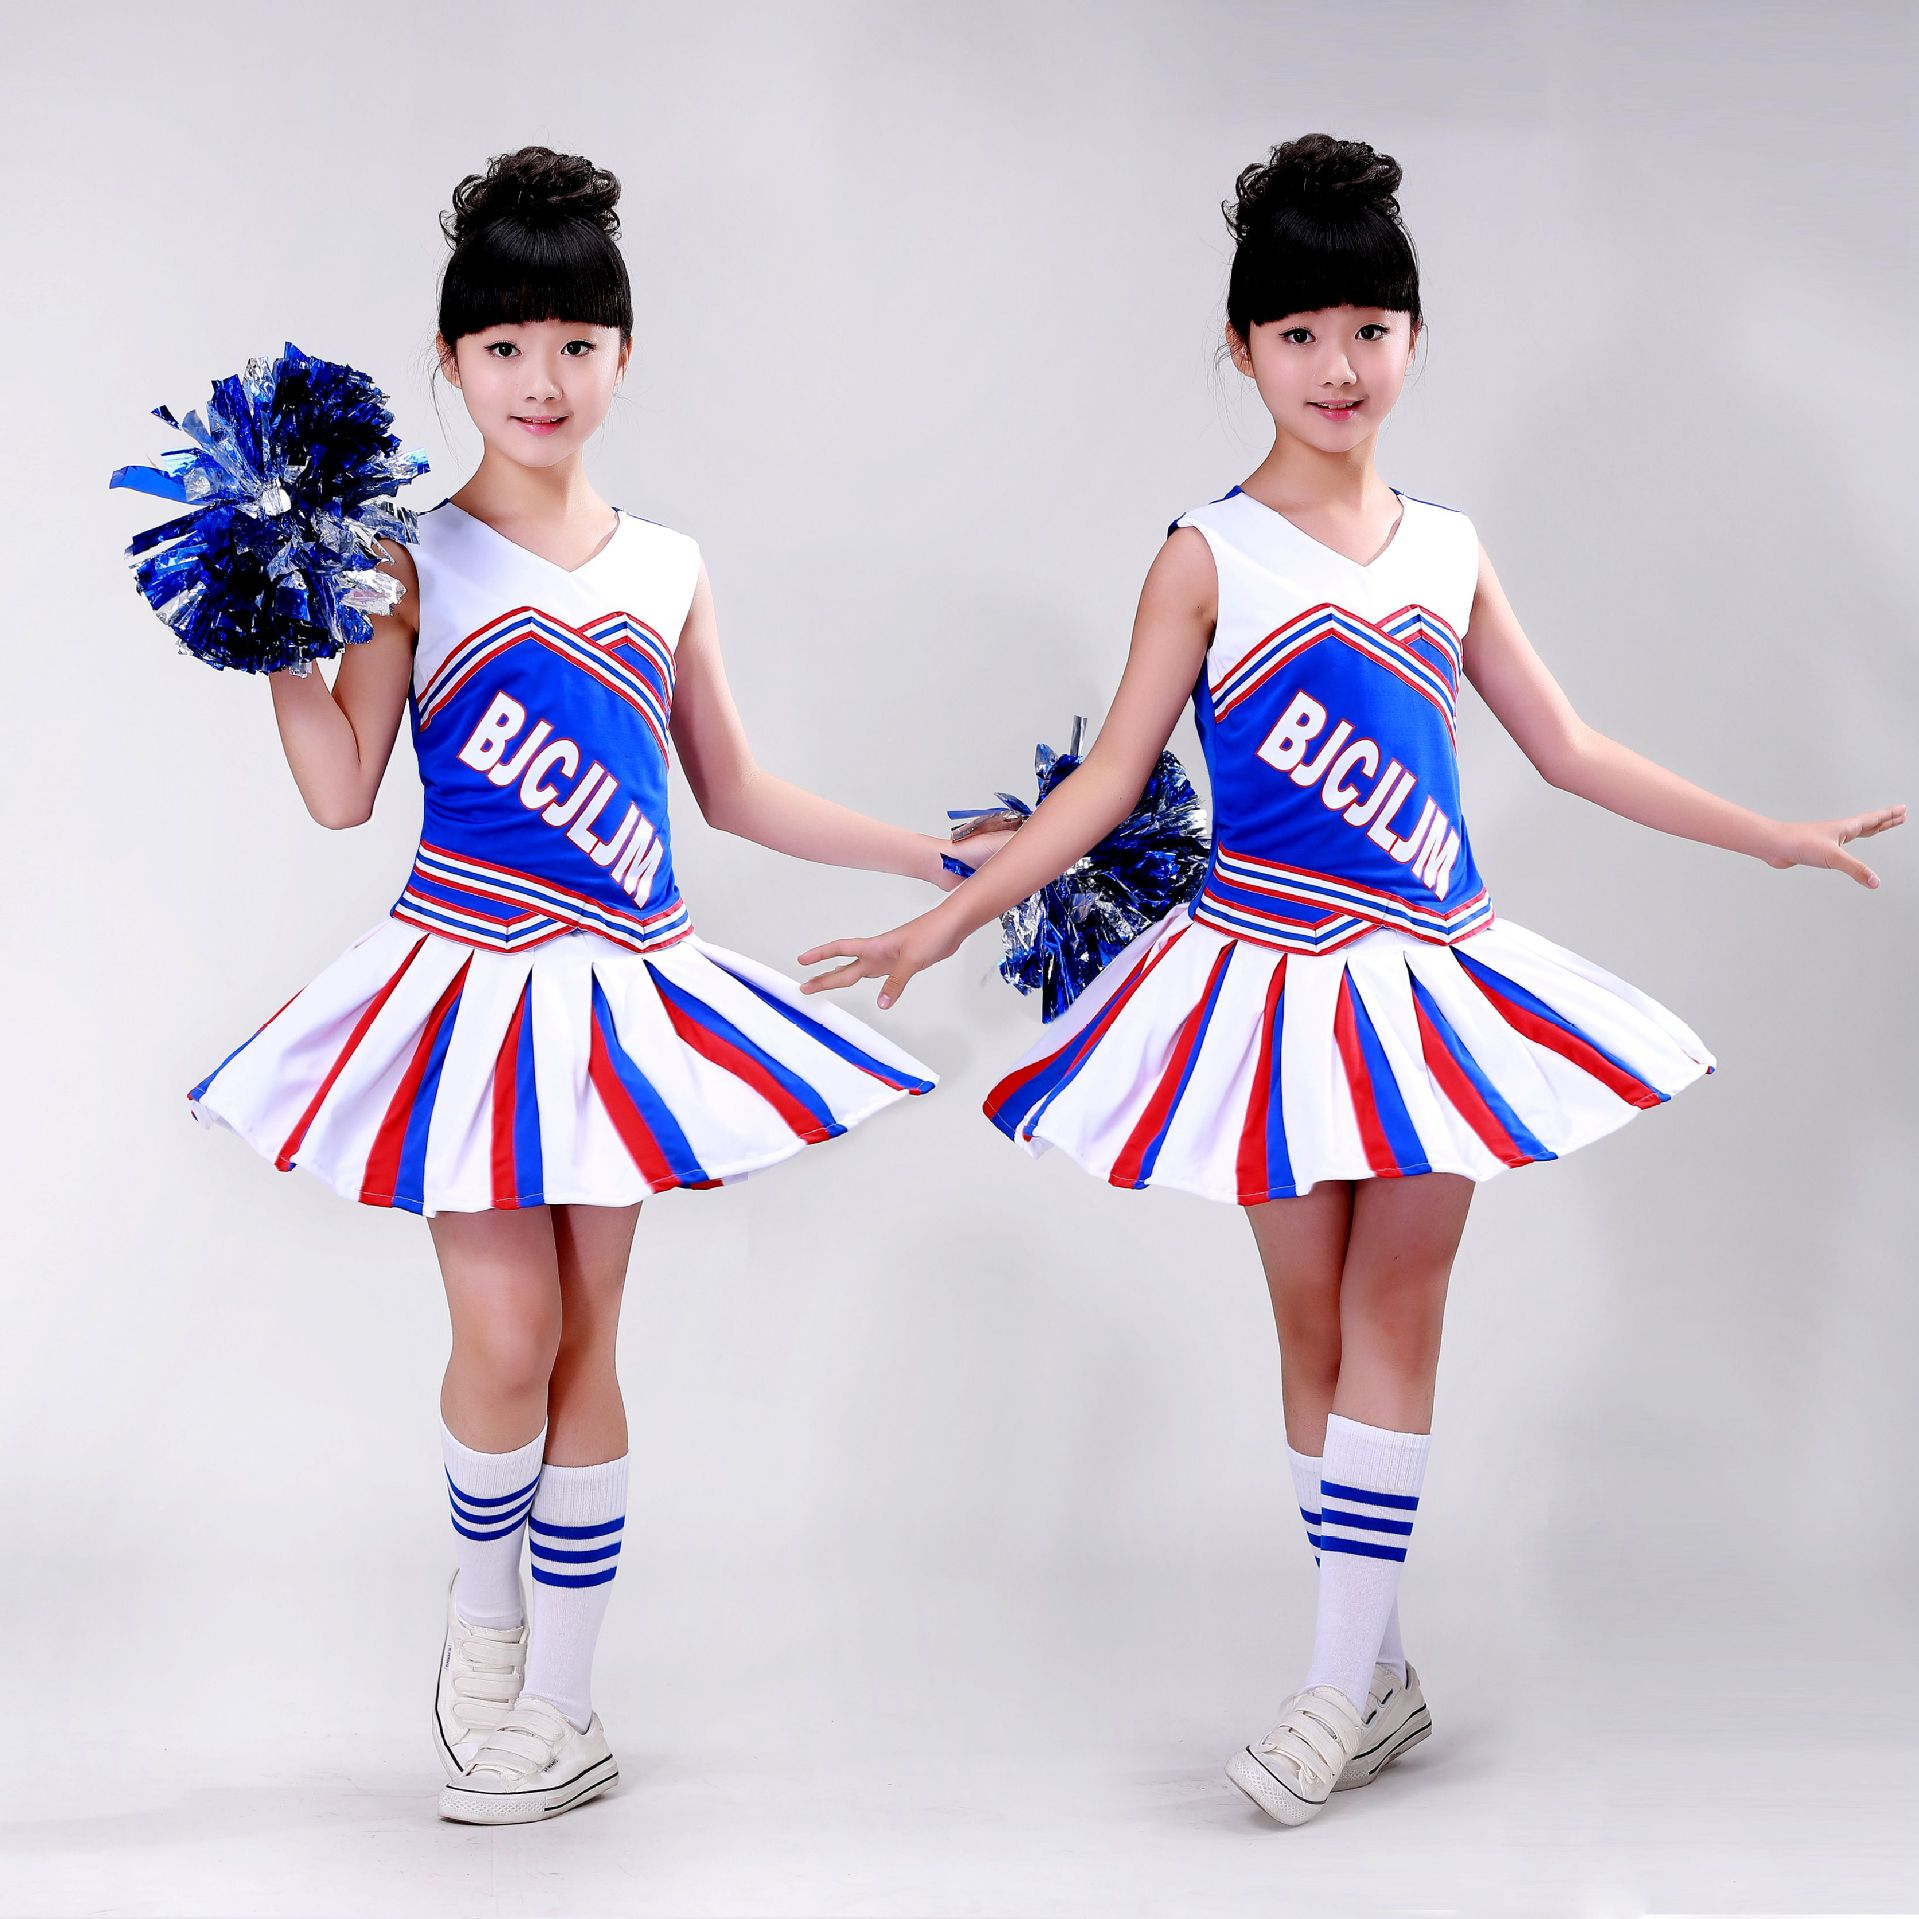 Children's Cheerleading Costumes Kids Elementary School Students Boys Girls' Dance Uniforms Children's Cheerleading Costumes